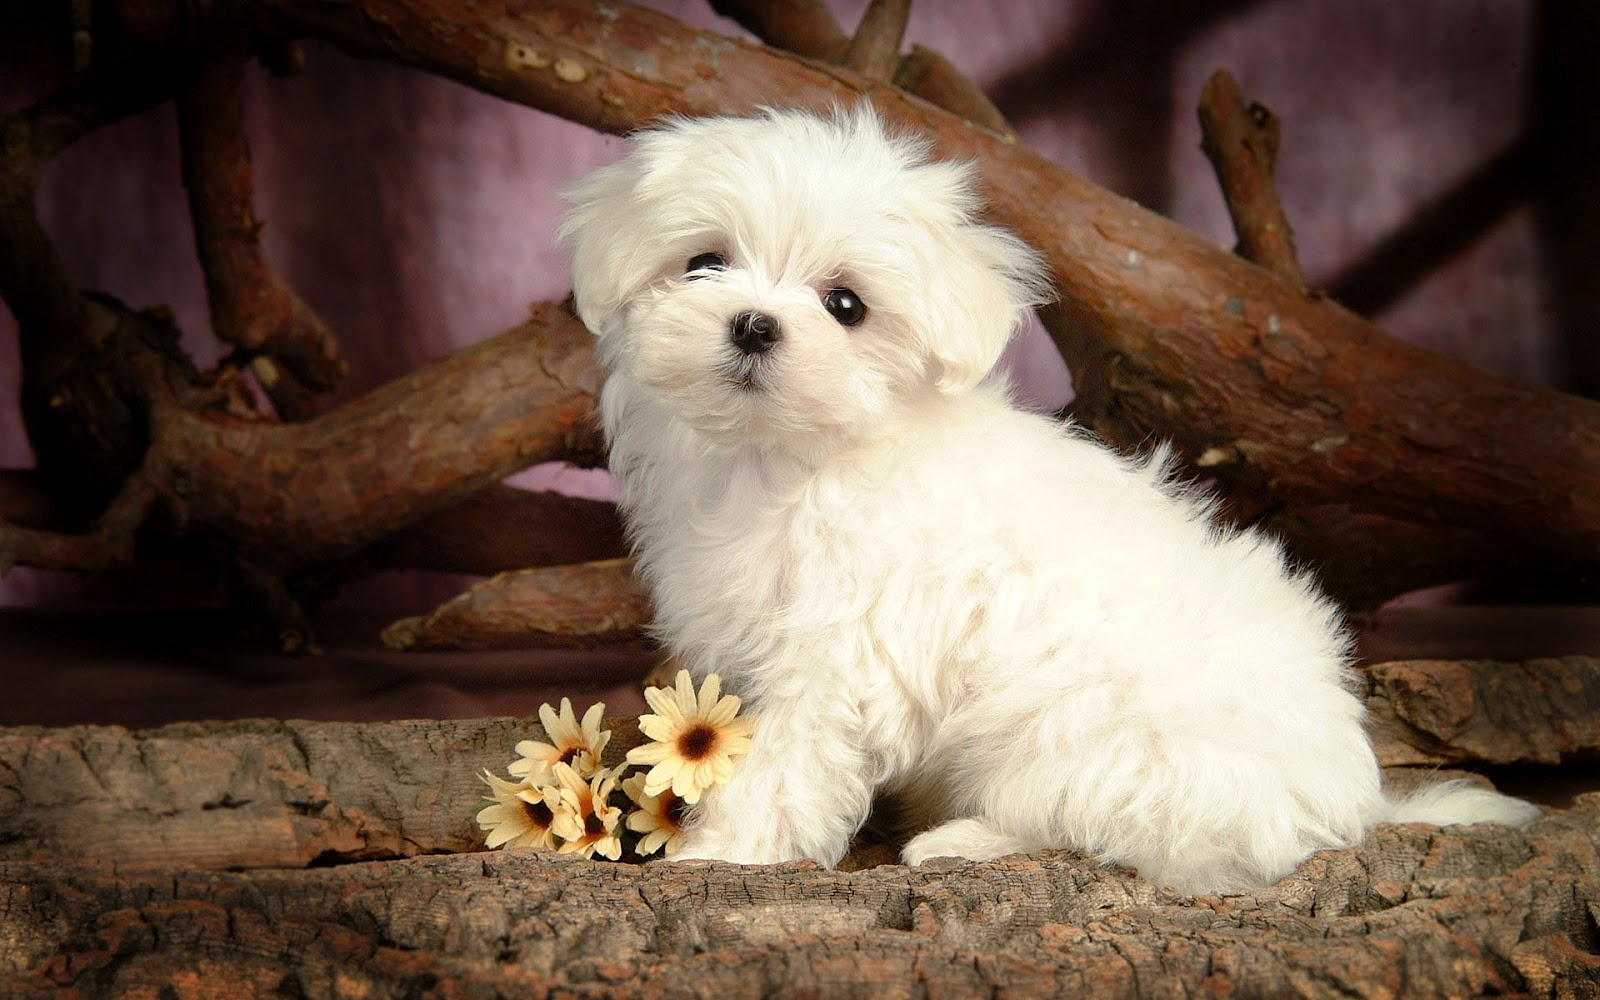 HD Dogs Wallpapers and Photos | HD Animals Wallpapers